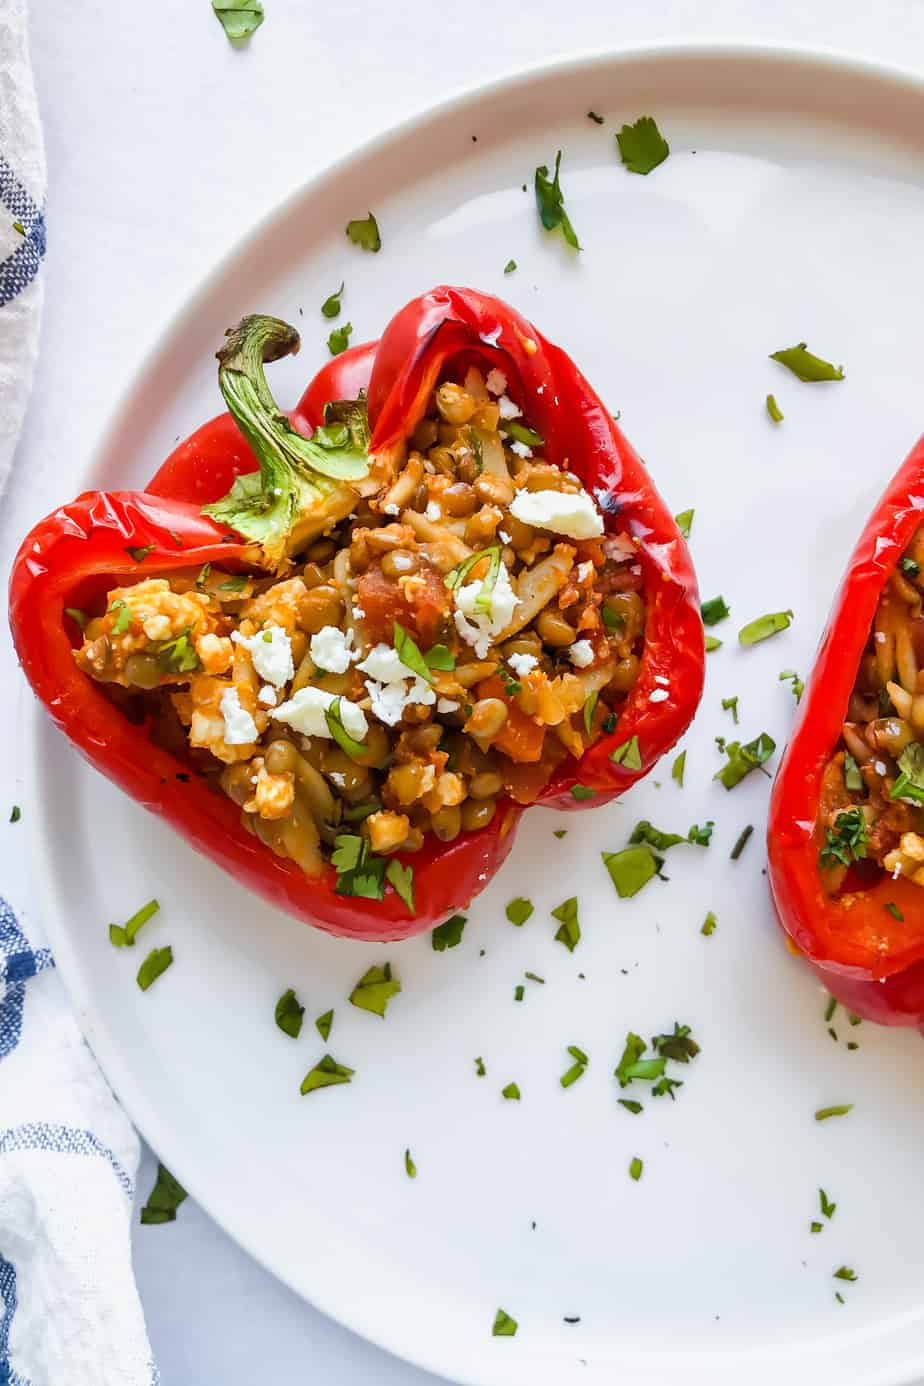 lentil stuffed peppers on a plate